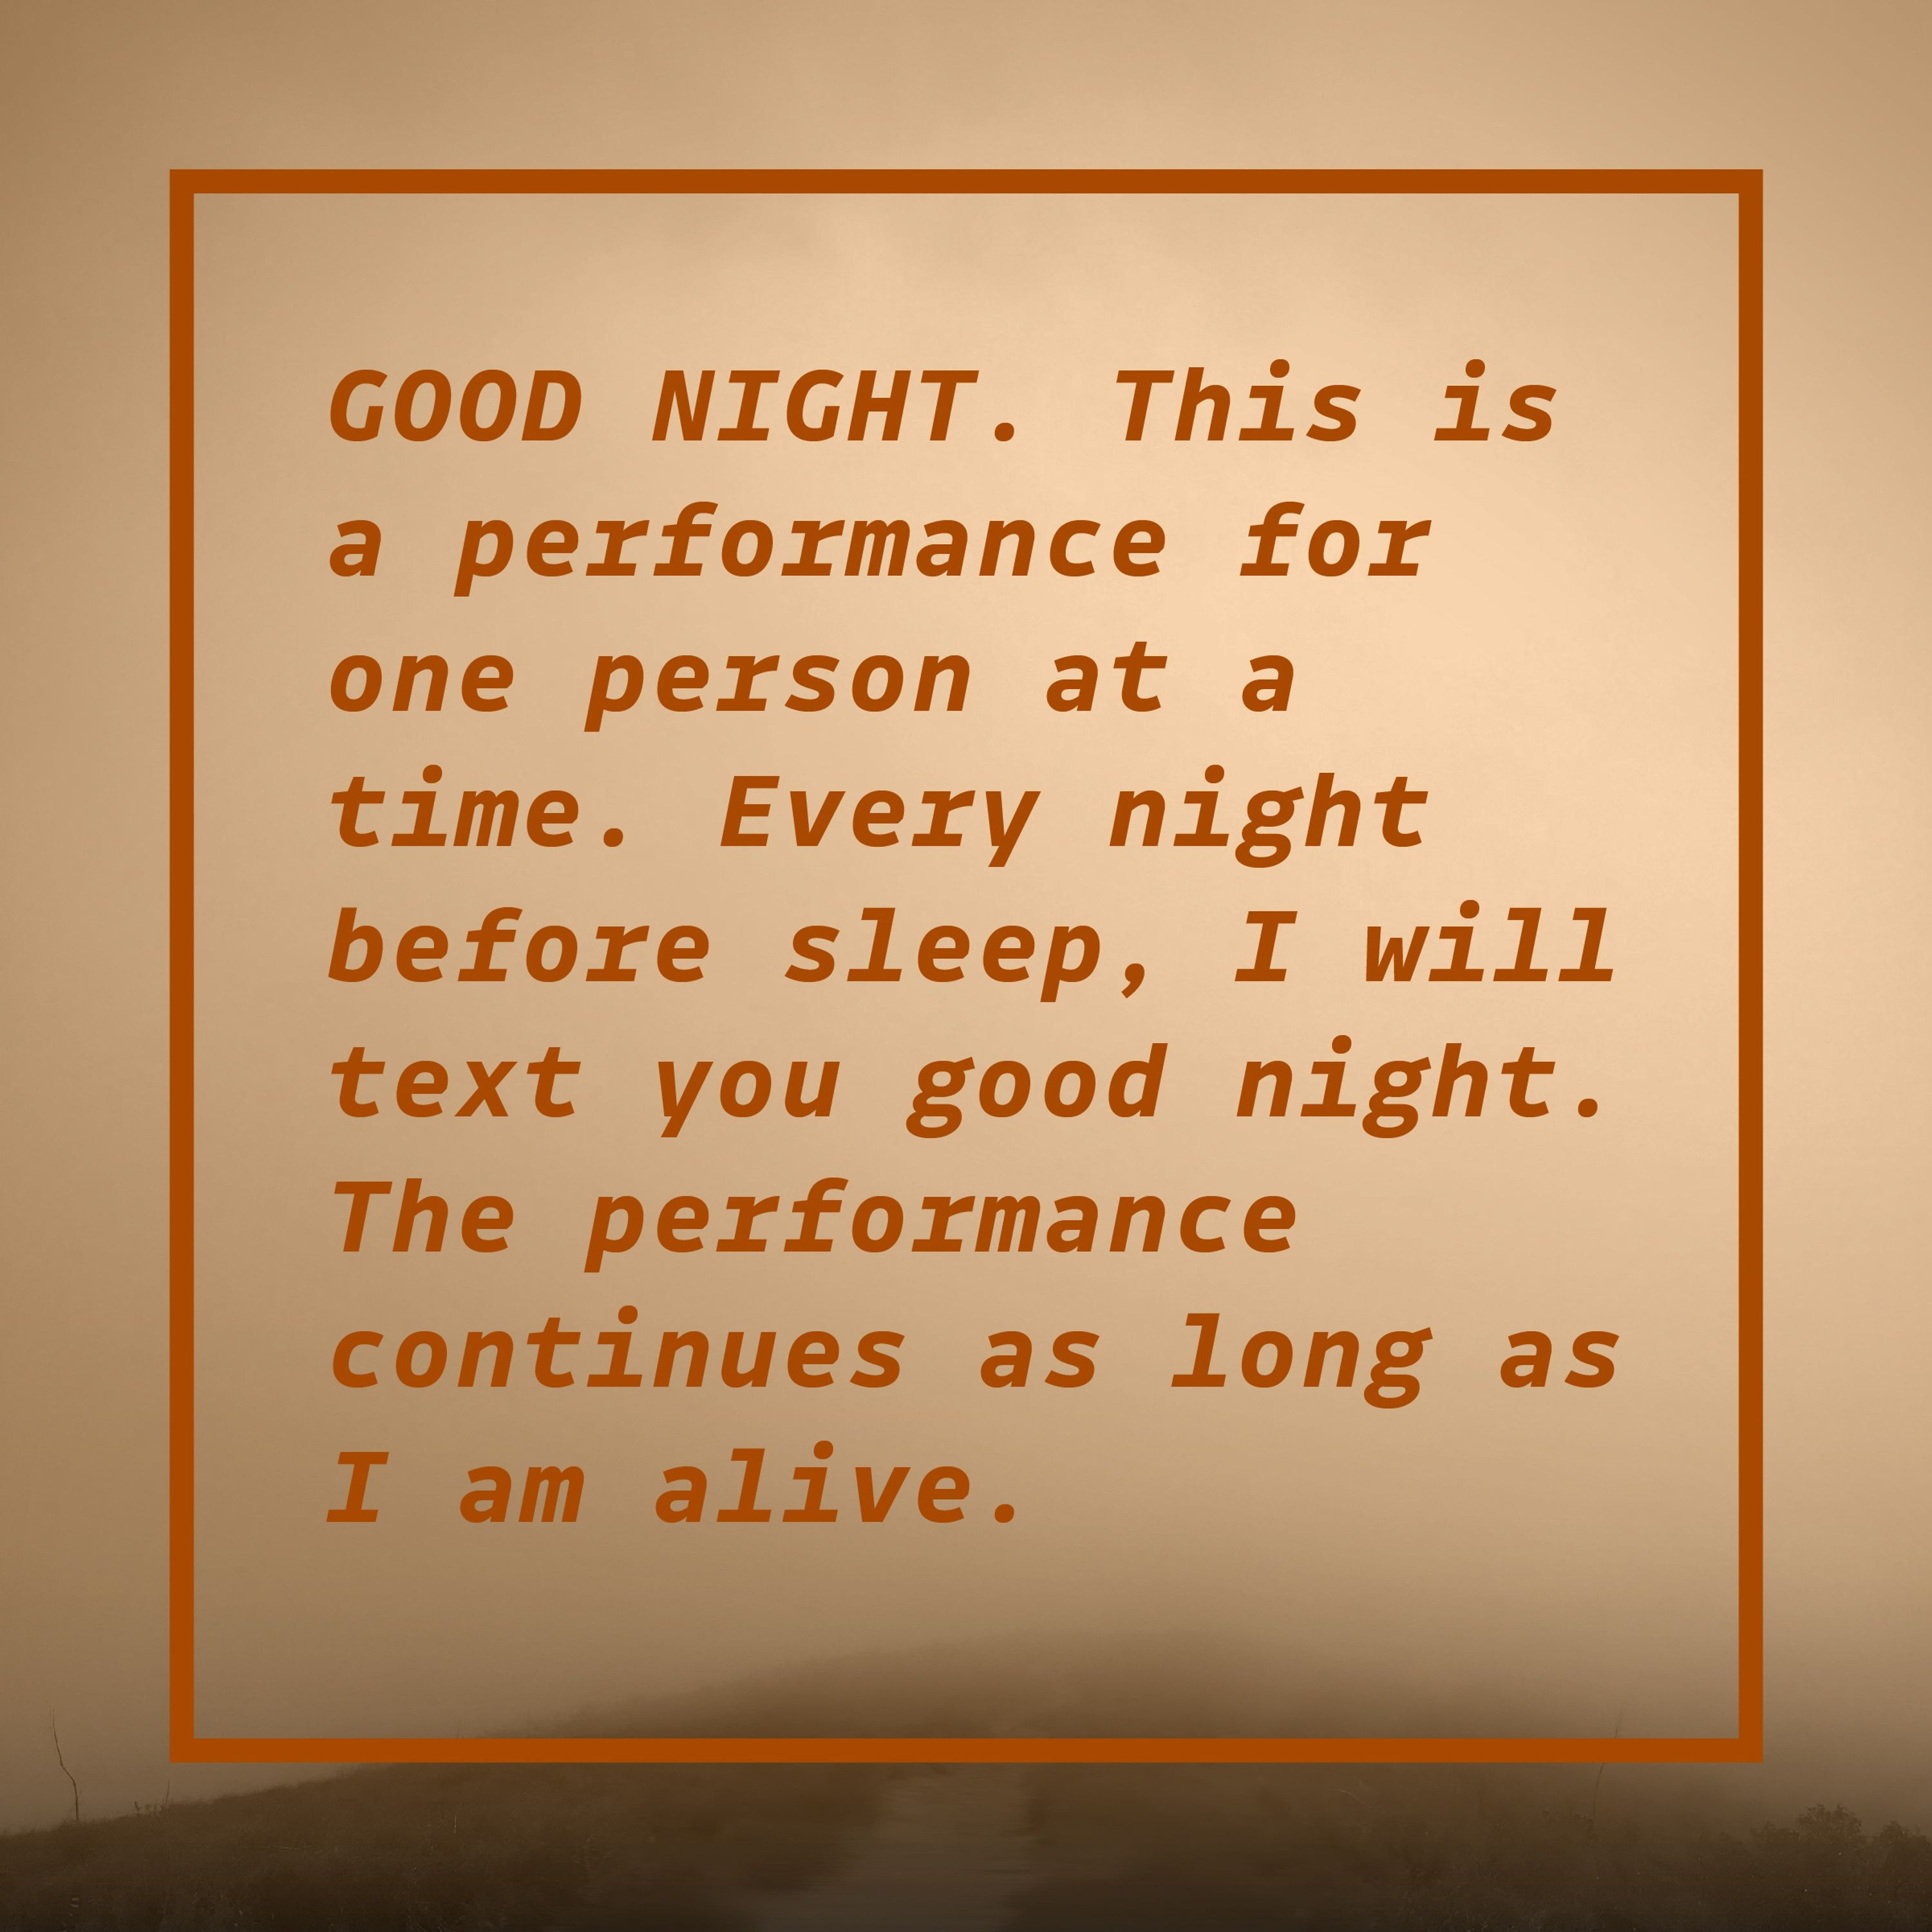 """In a photograph of orange wall text, the piece """"GOOD NIGHT"""" is described as a performance for one person at a time, where every night before sleep, the artist will text you goodnight, and the performance will continue for as long as she is alive."""